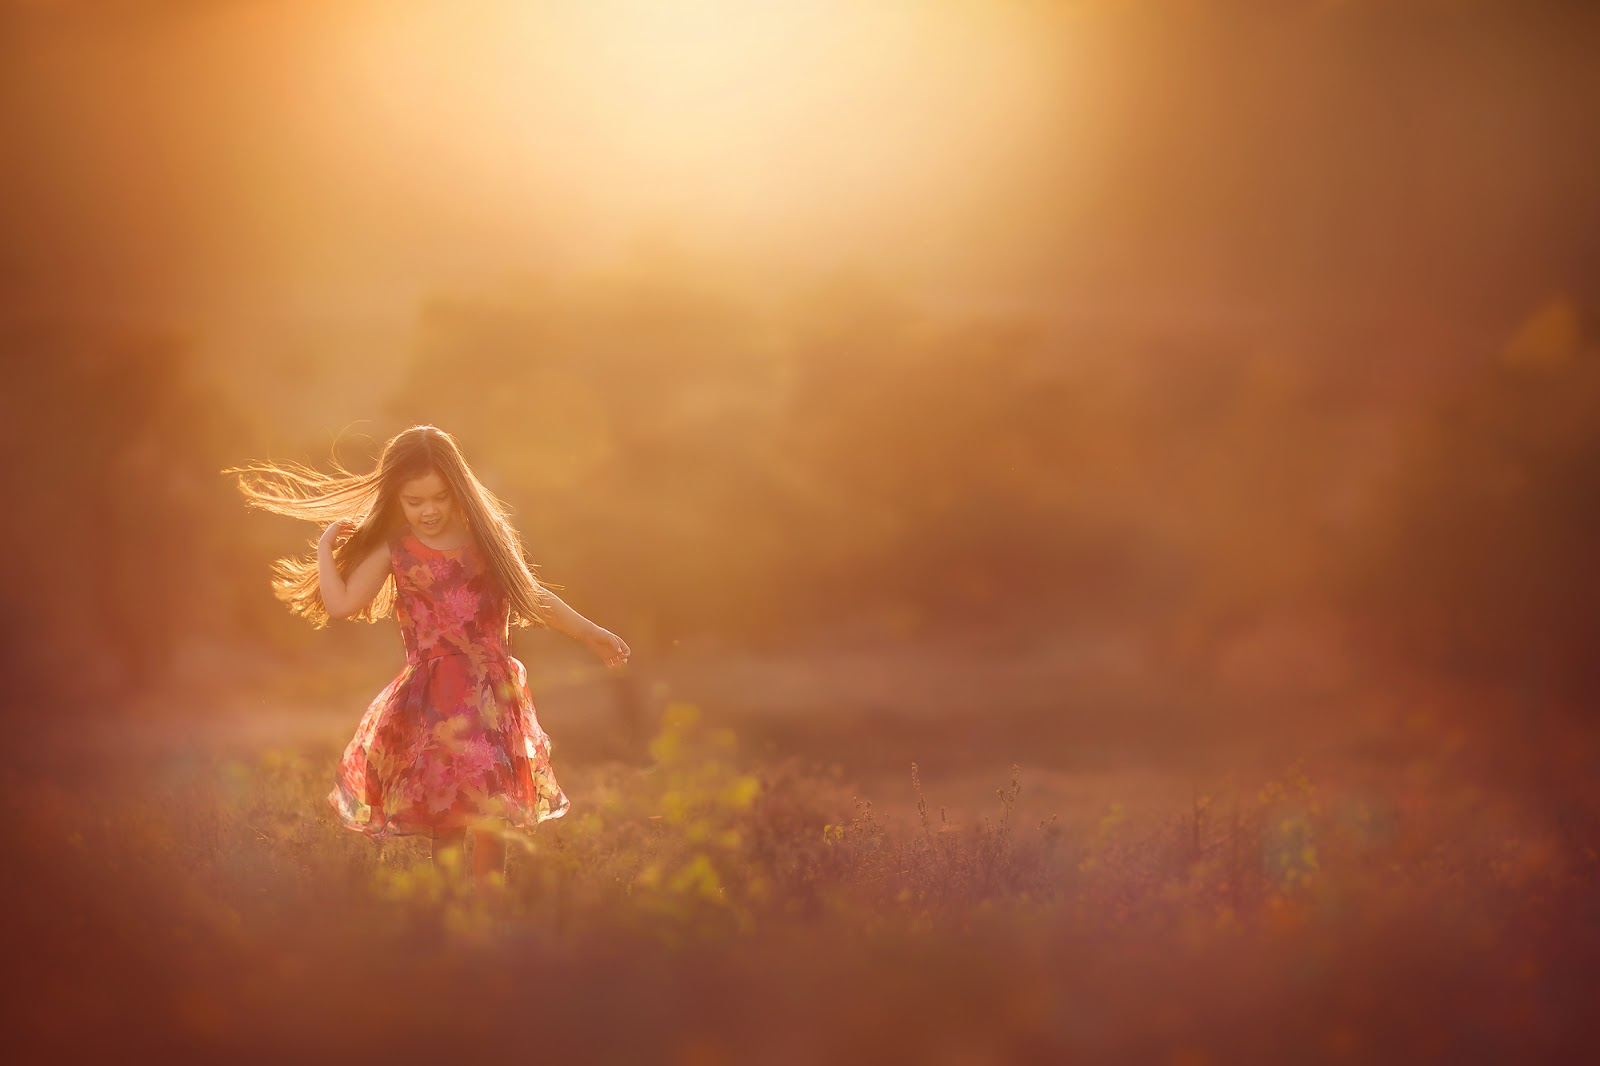 Canon golden hour portrait of a little girl in a red dress dancing in the forest by Willie Kers